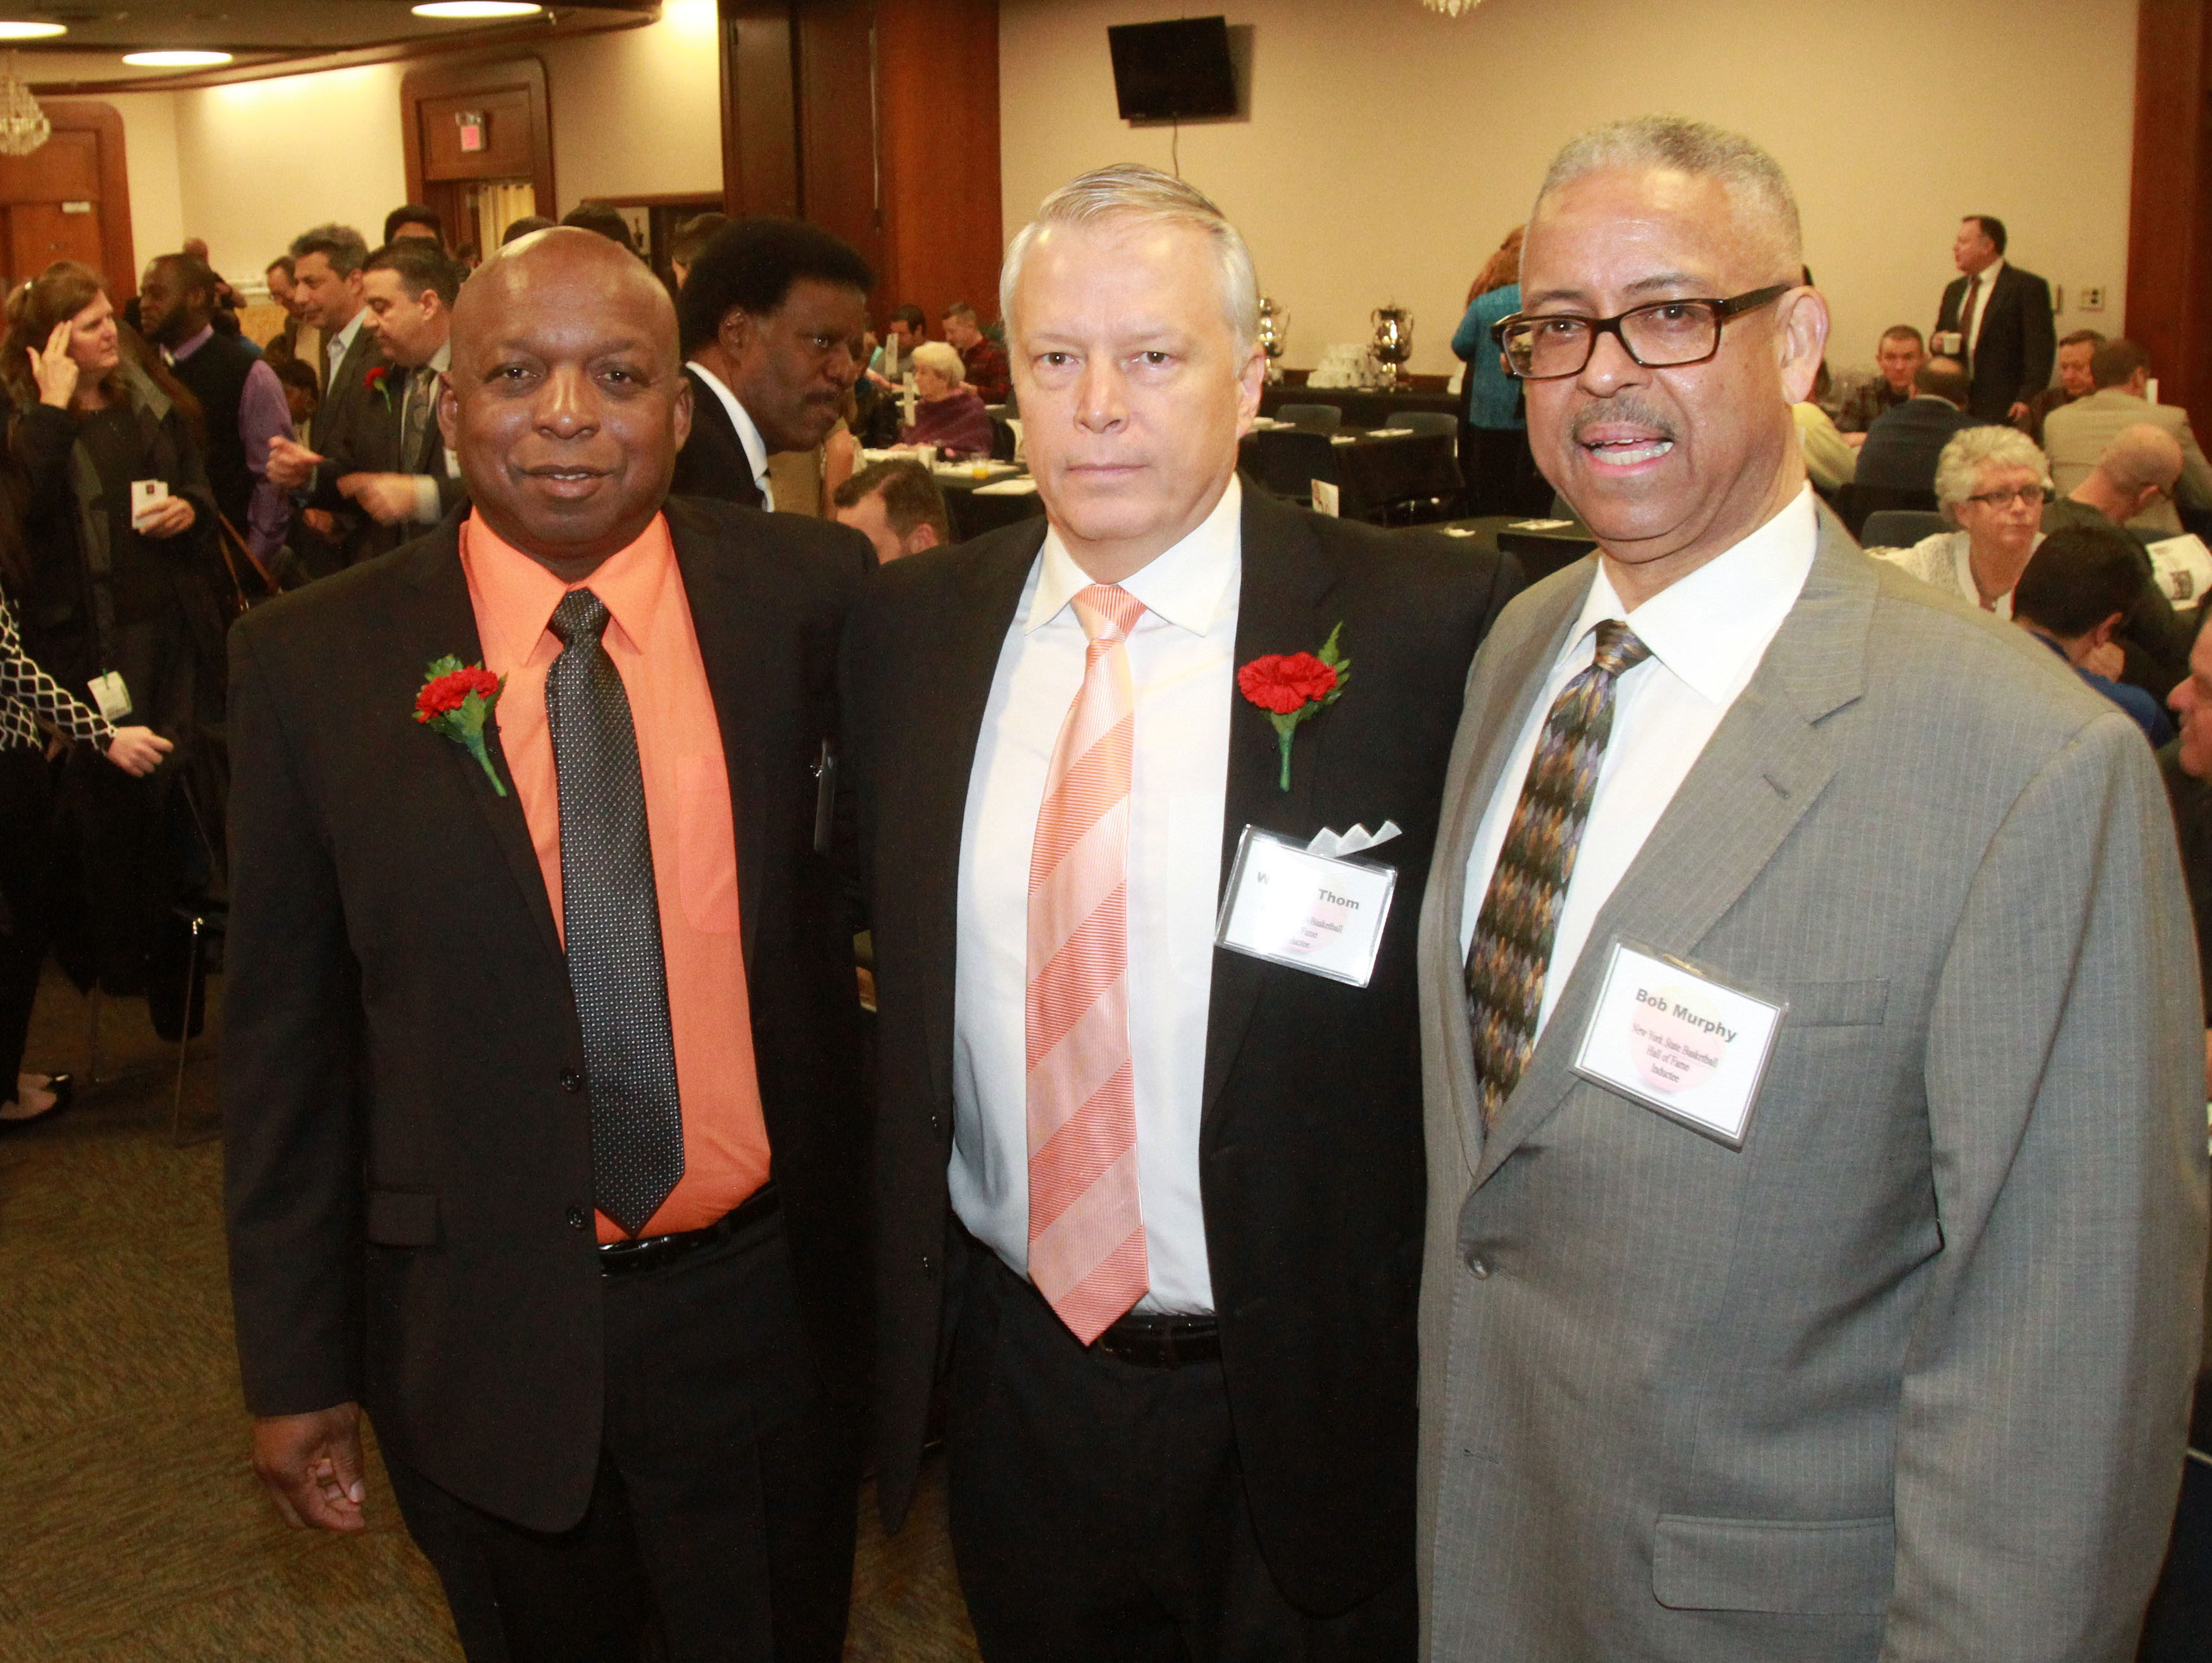 From left, White Plains' coach Spencer Mayfield, Croton's coach Bill Thom, and Woodlands' coach Bob Murphy were inducted into the Basketball Hall of Fame at the Glens Falls Civic Center March 13, 2016.